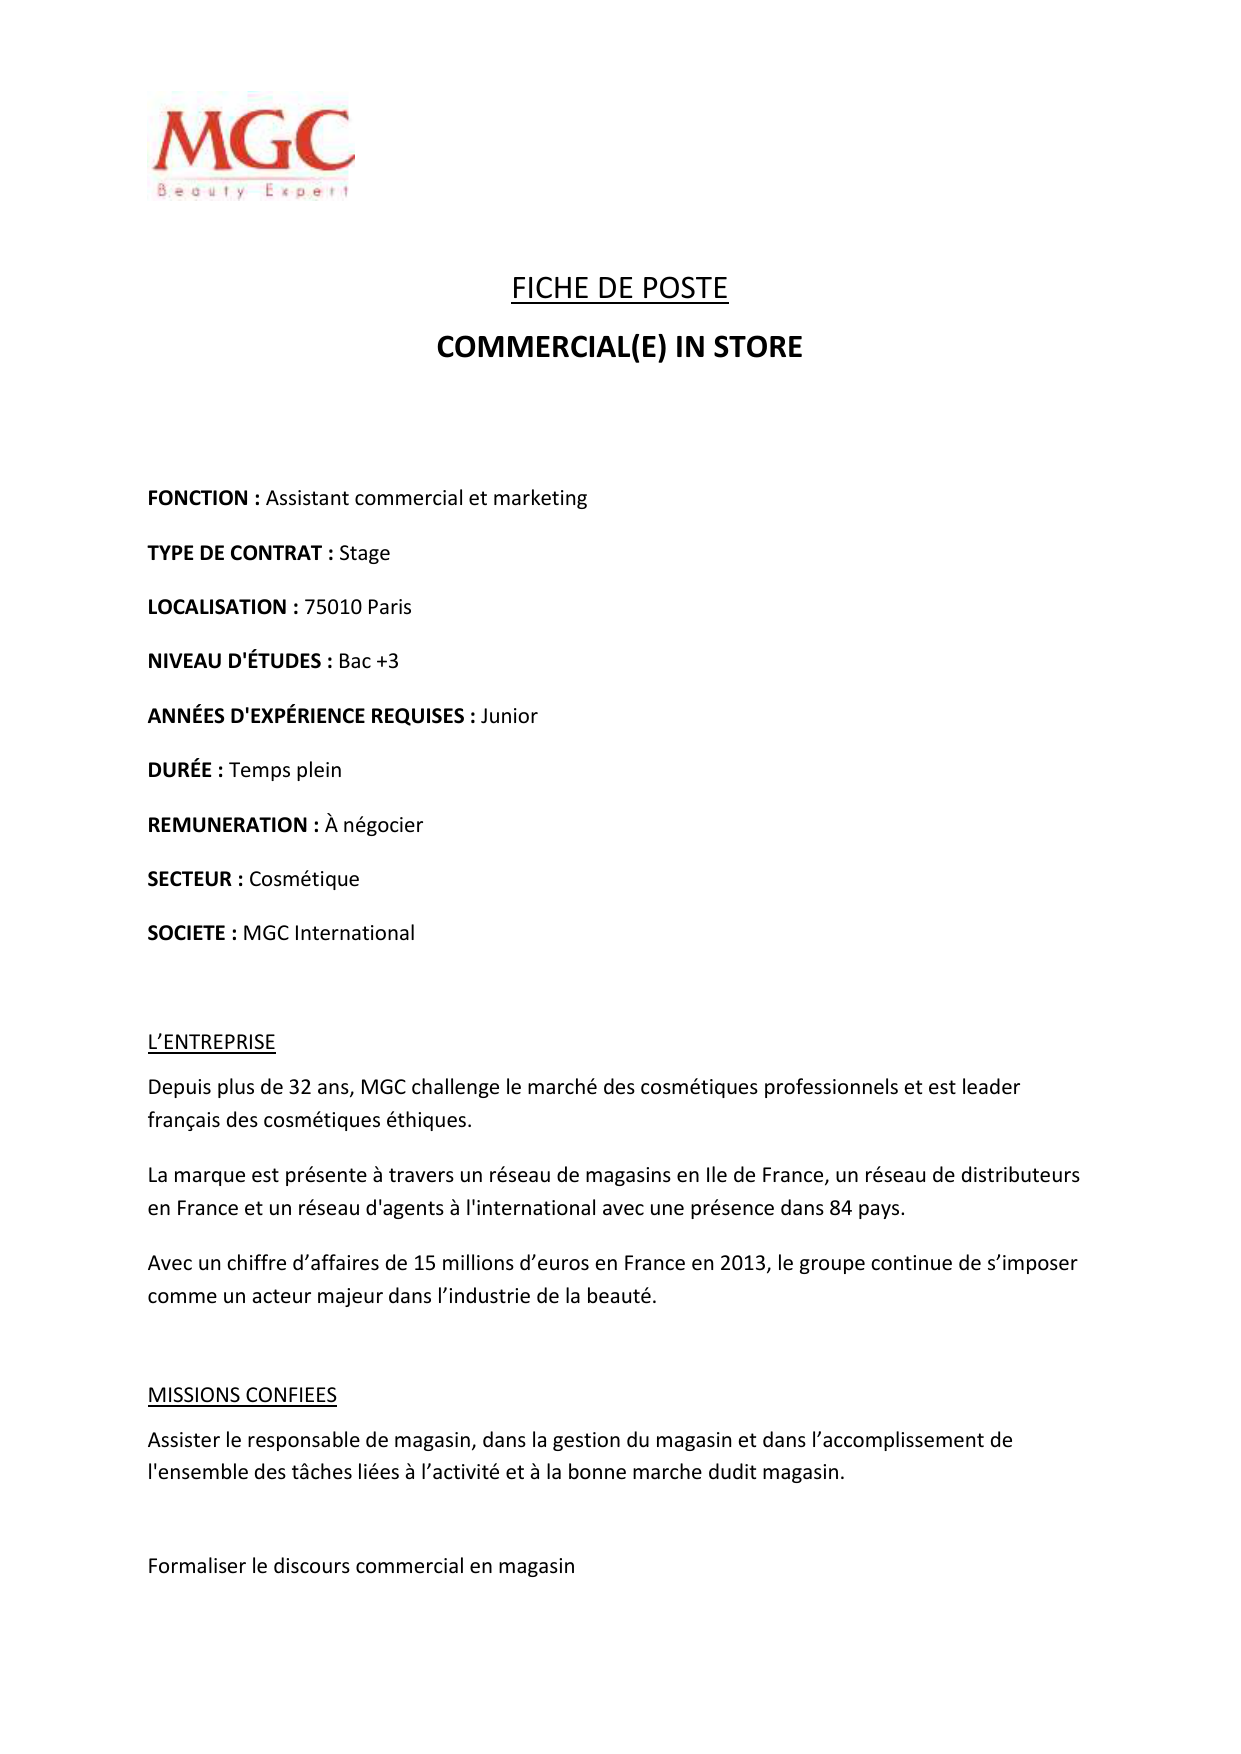 Fiche de poste responsable commercial et marketing pdf